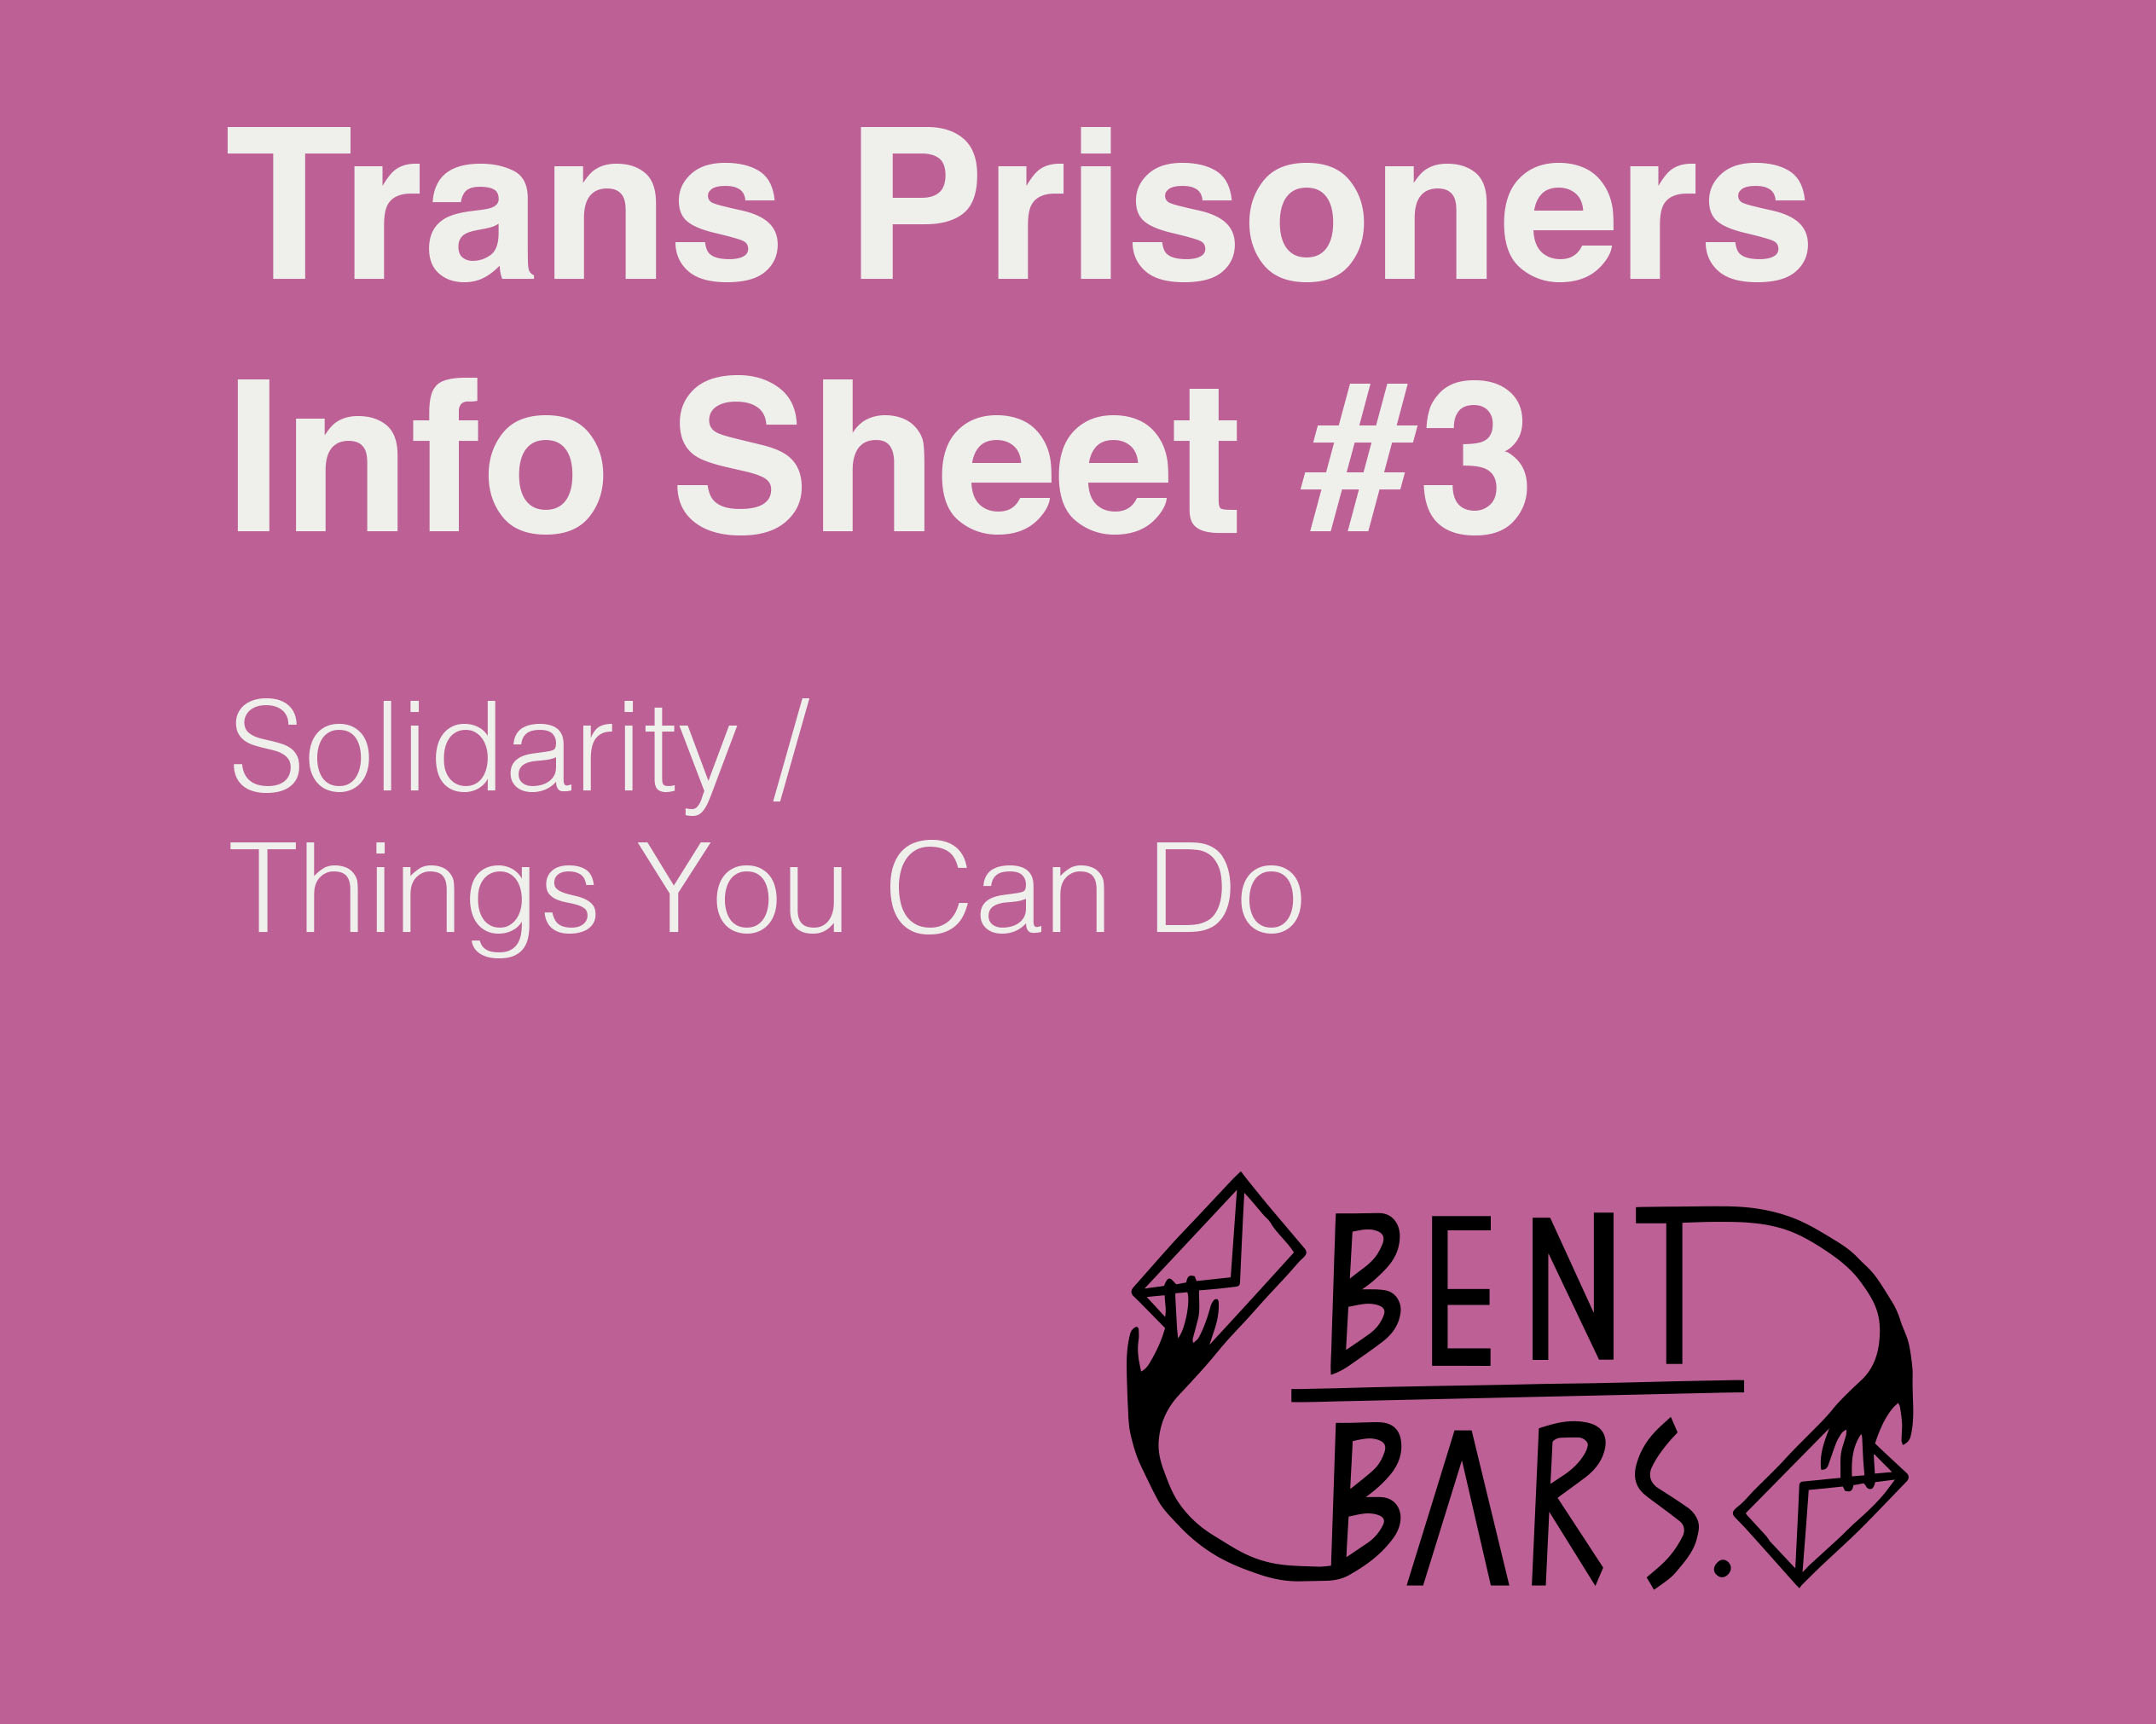 Trans Prisoner Info Sheet 3 page cover